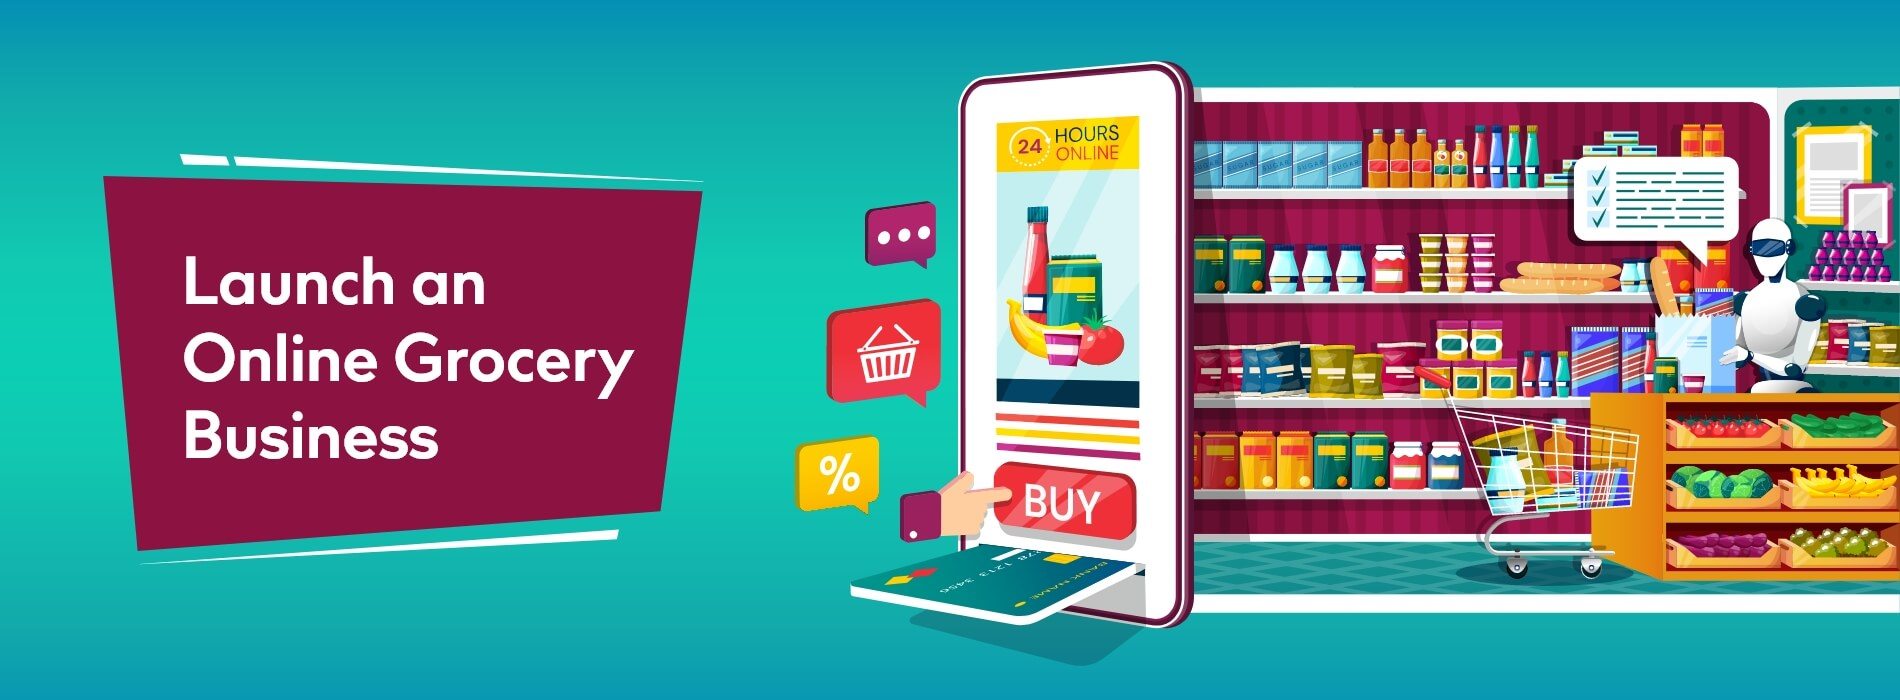 Types of Business Models to Launch an Online Grocery Business